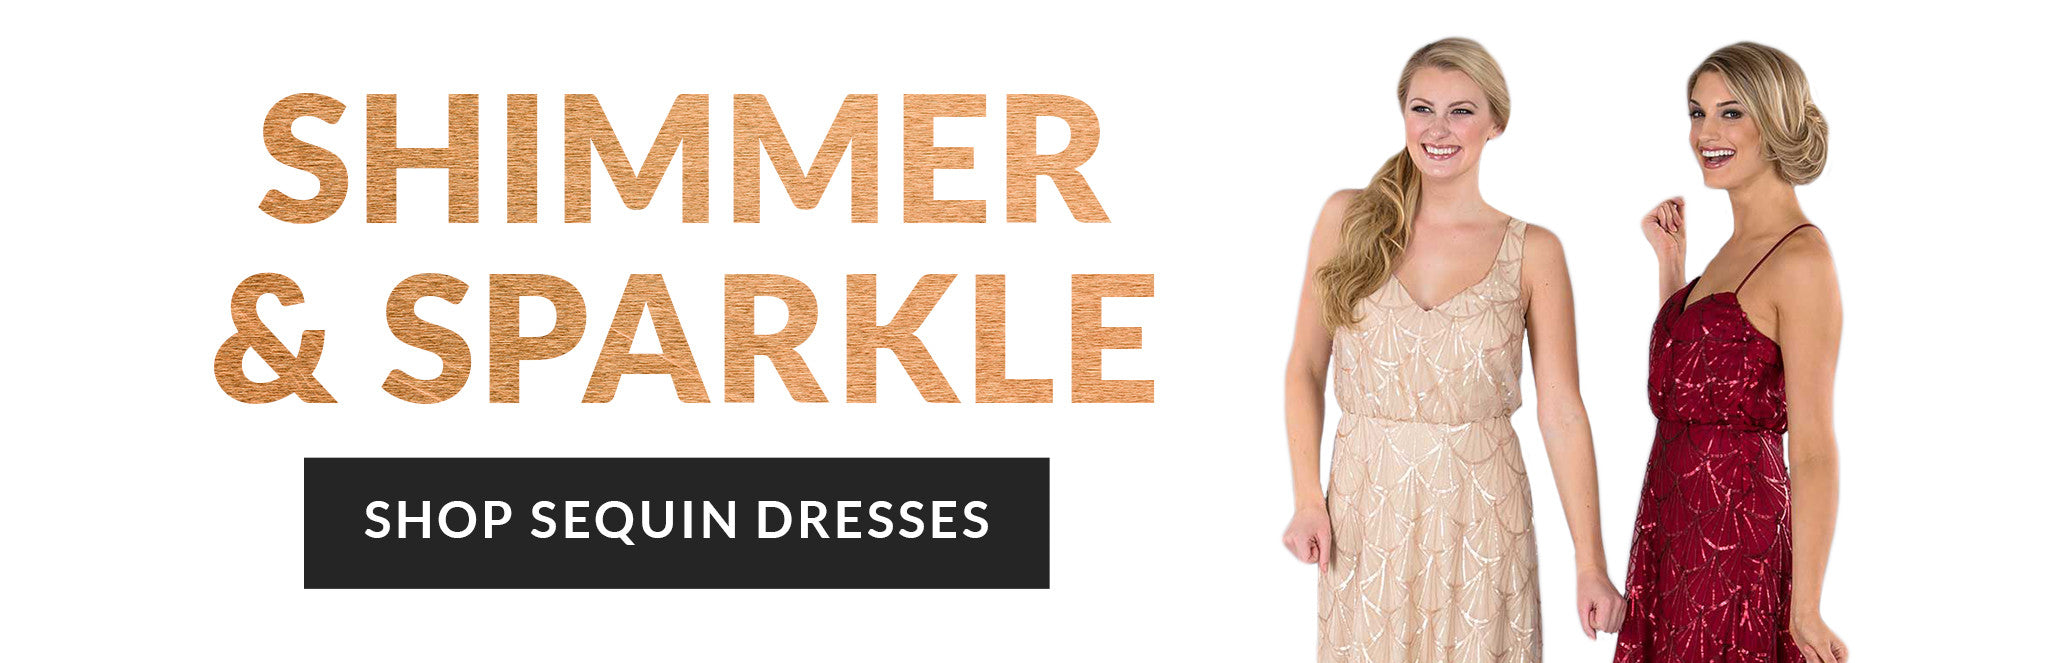 Shimmer & Sparkle: Shop sequin dresses